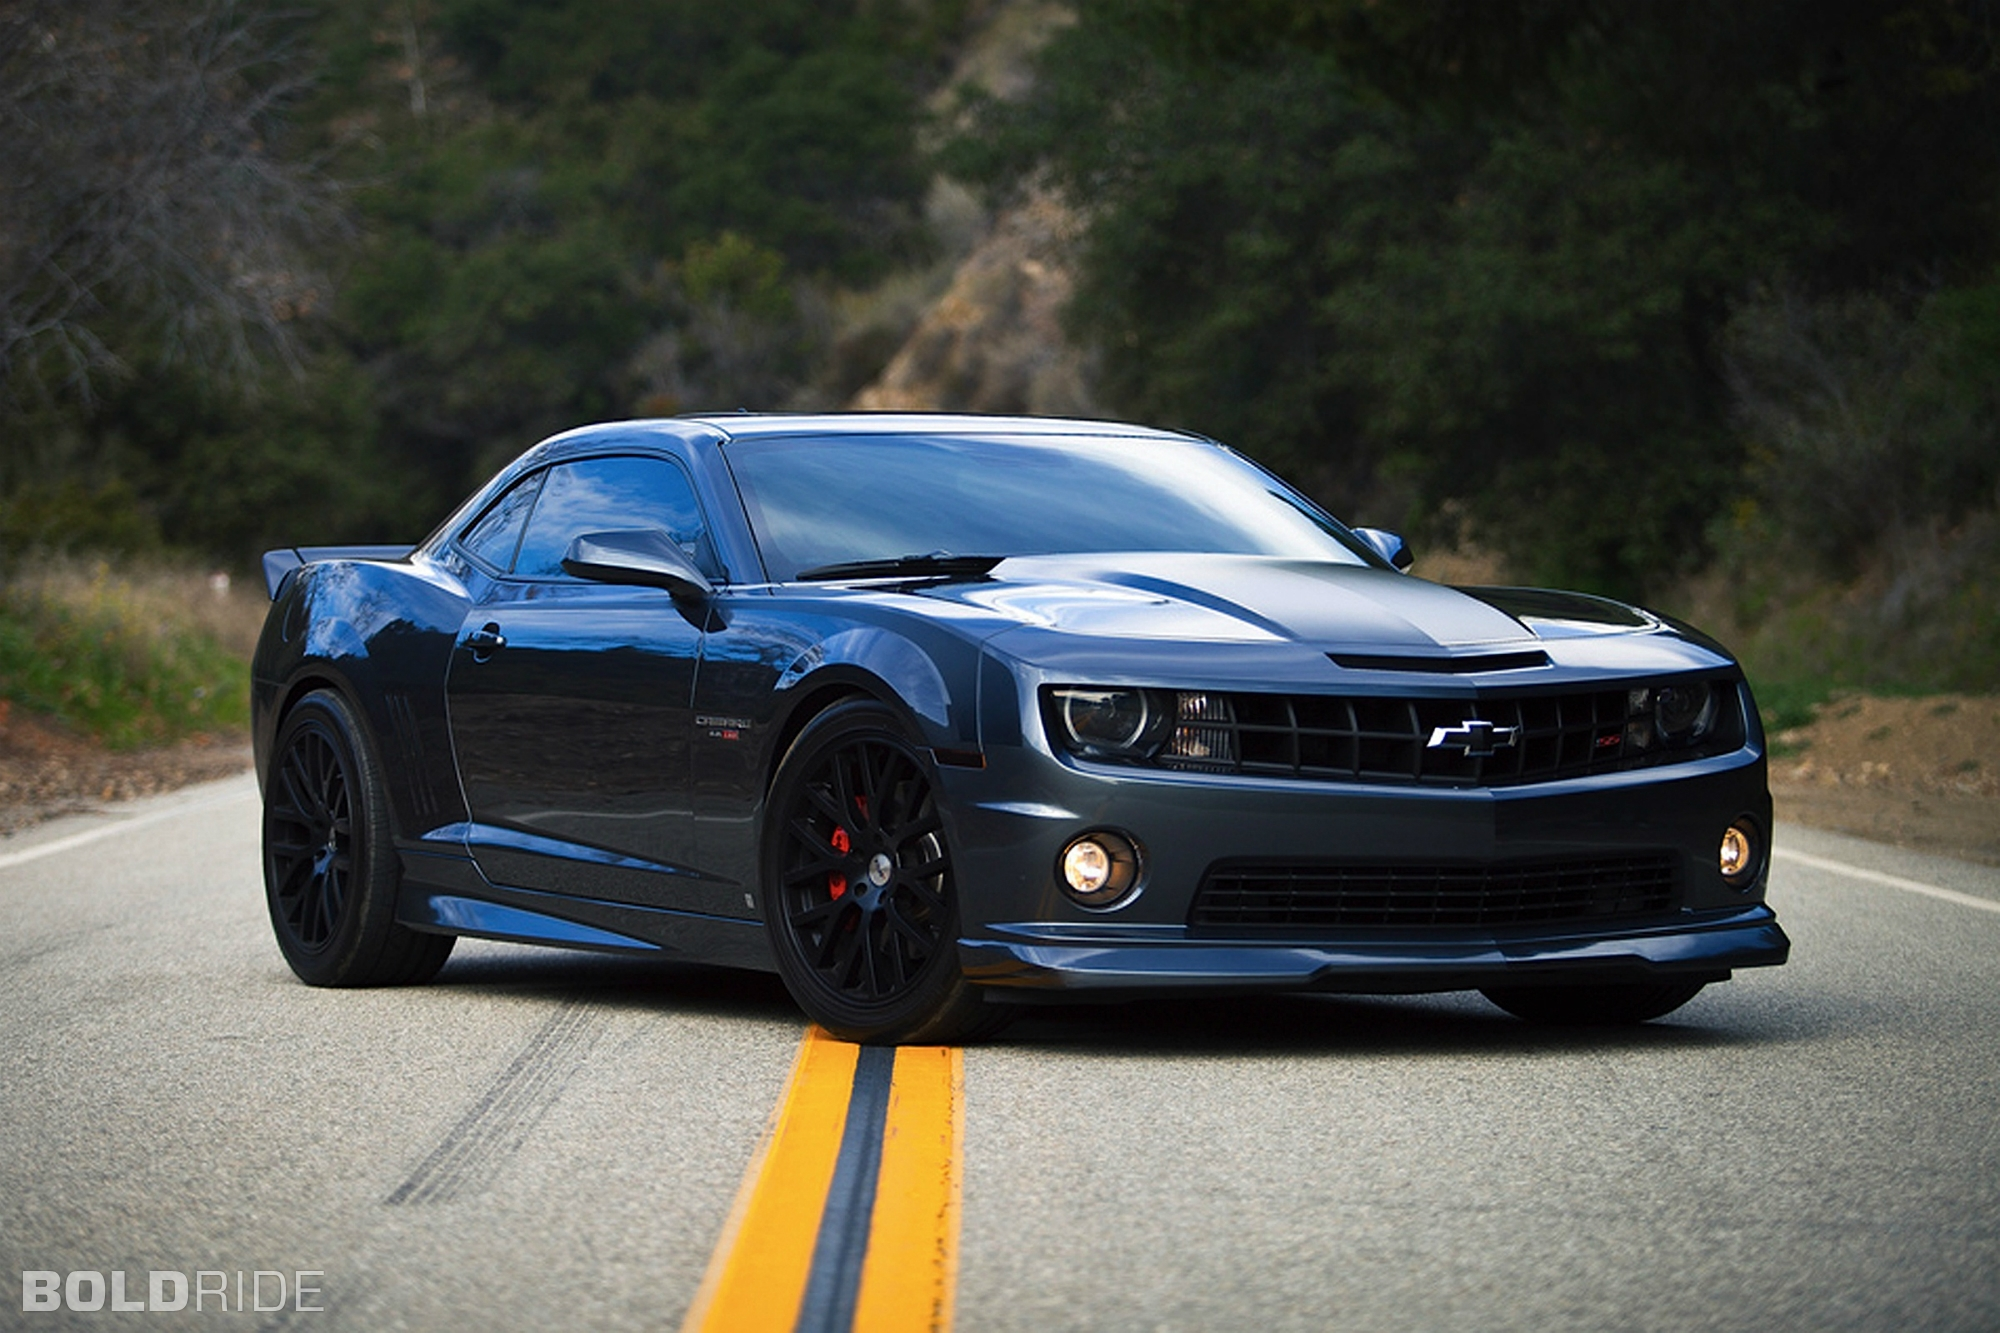 2010 Chevrolet Camaro Ss tuning muscle cars roads wallpaper background 2000x1333